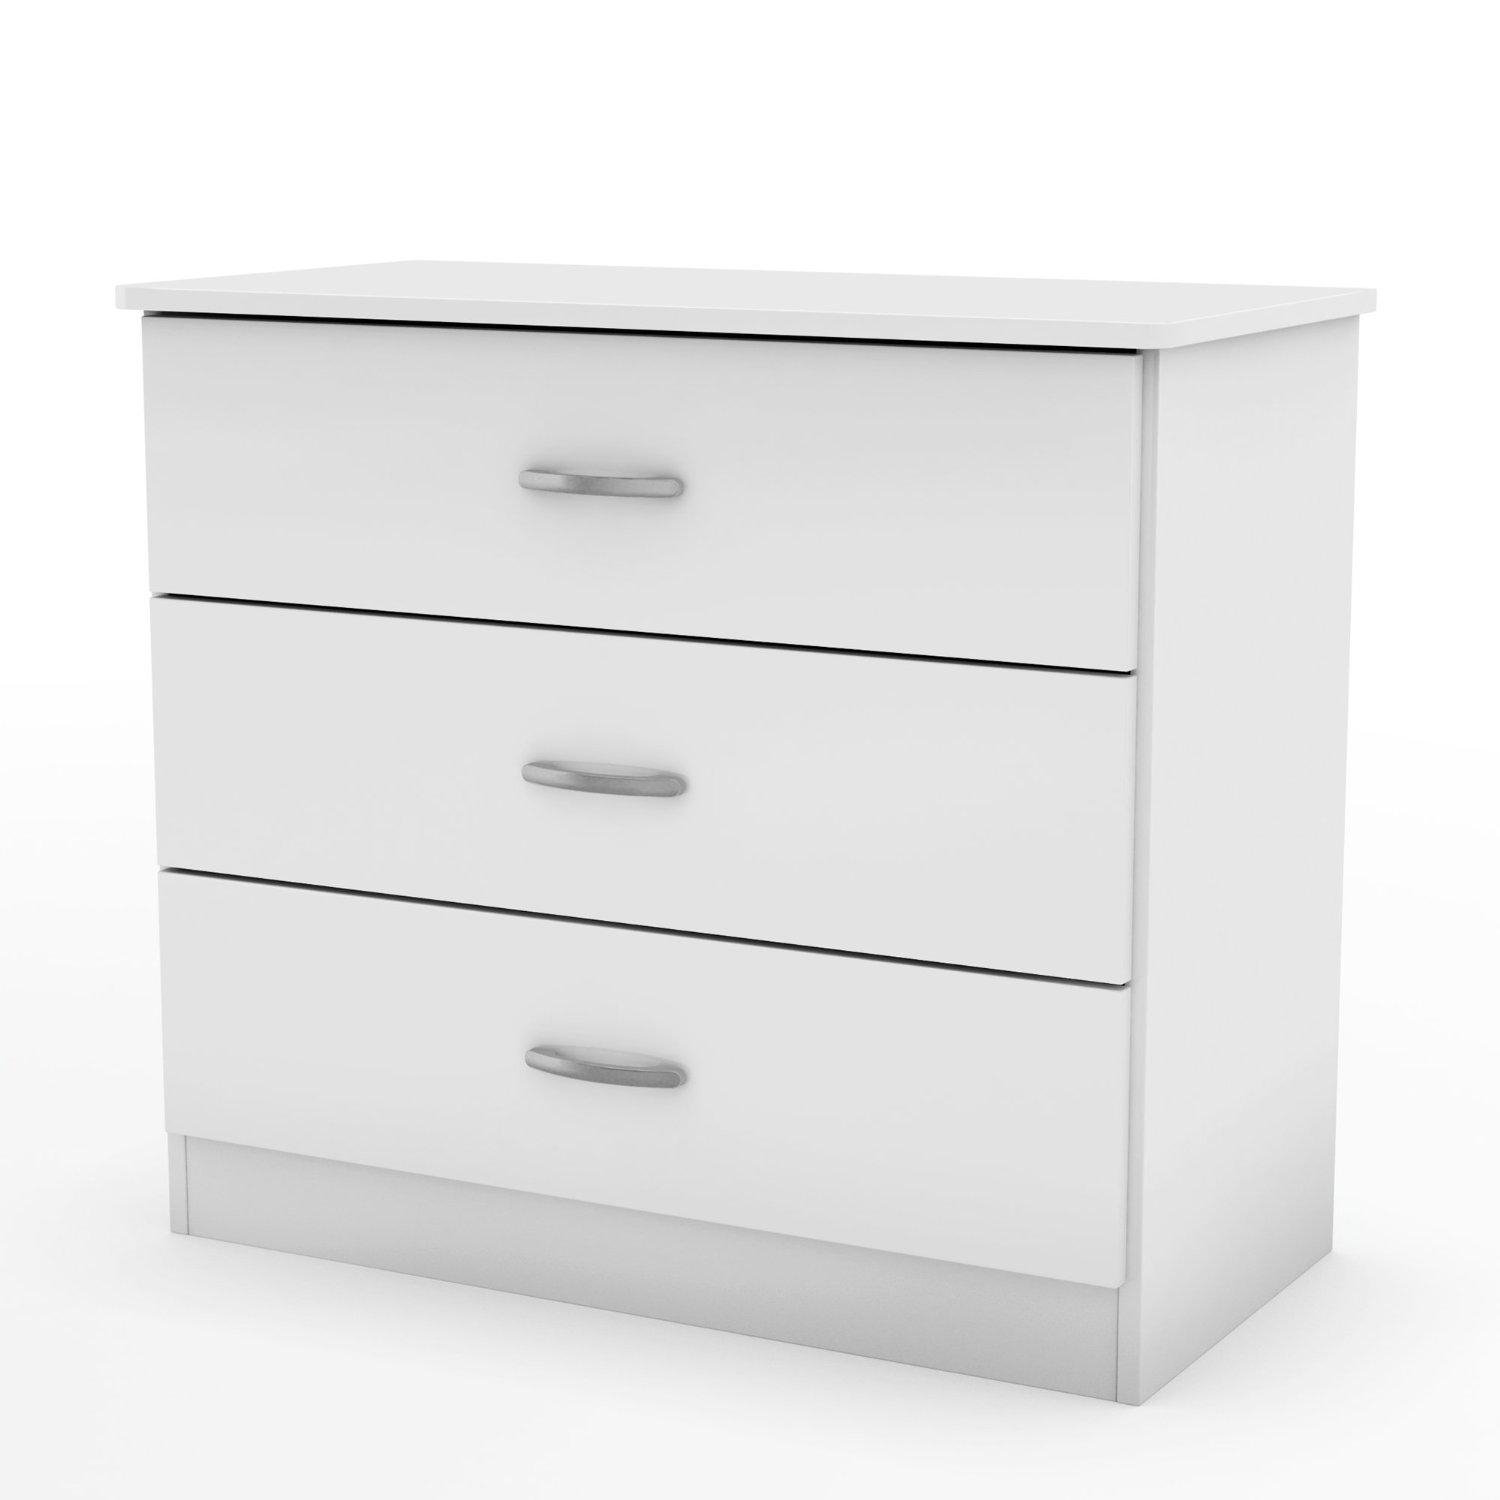 . White Modern Bedroom Chest Dresser with 3 Drawers